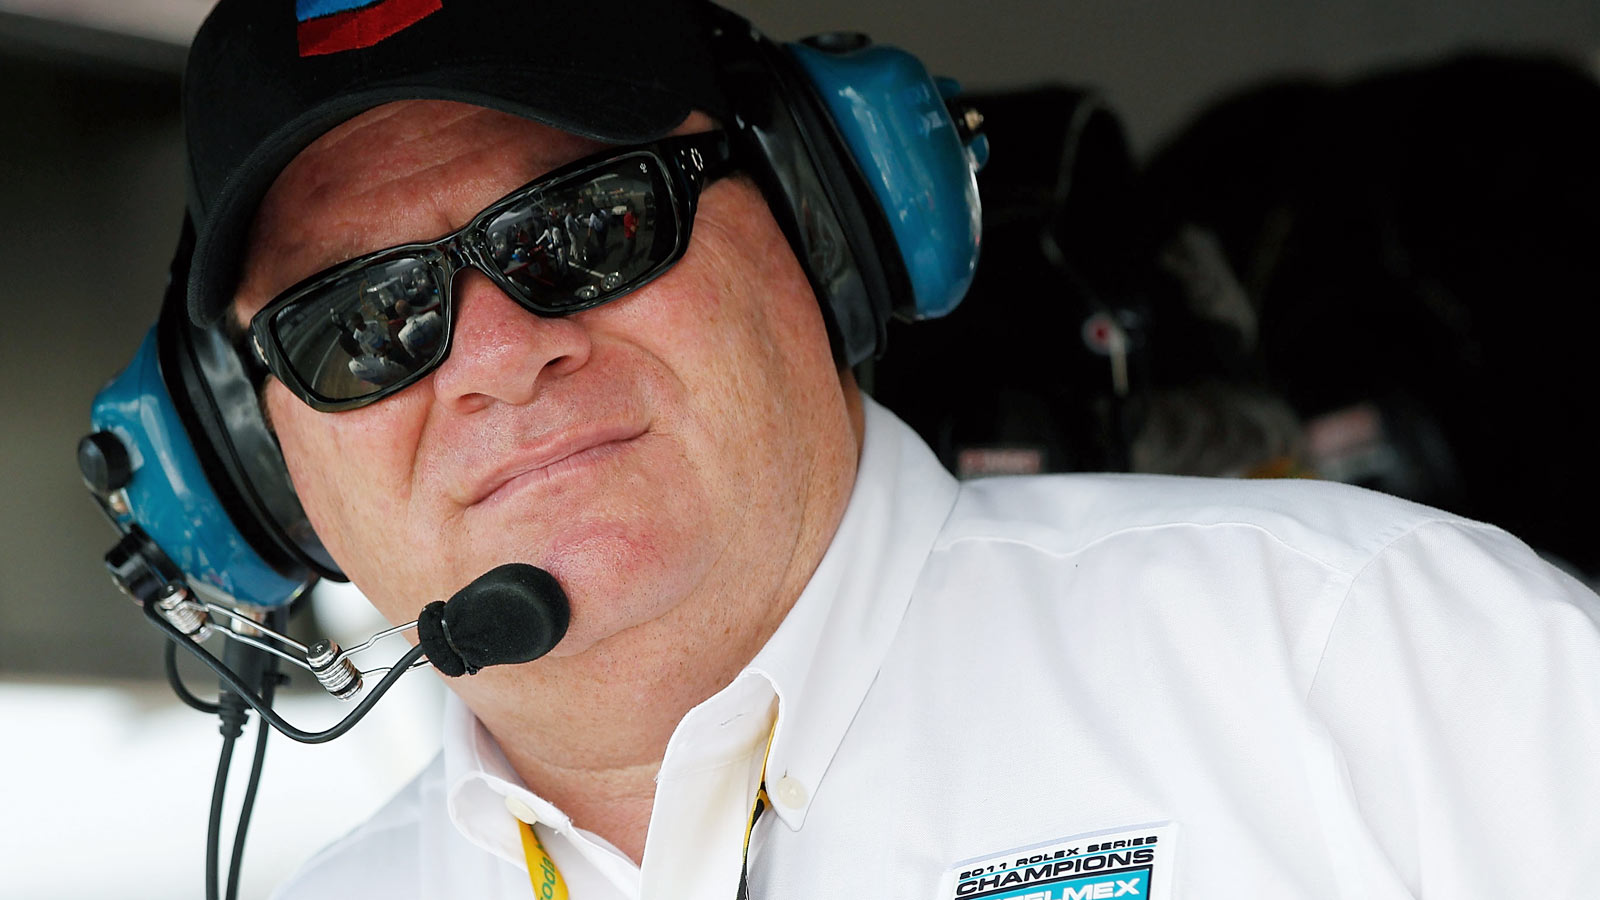 110715-NASCAR-Chip-Ganassi-stands-in-the-pits-MM-PI